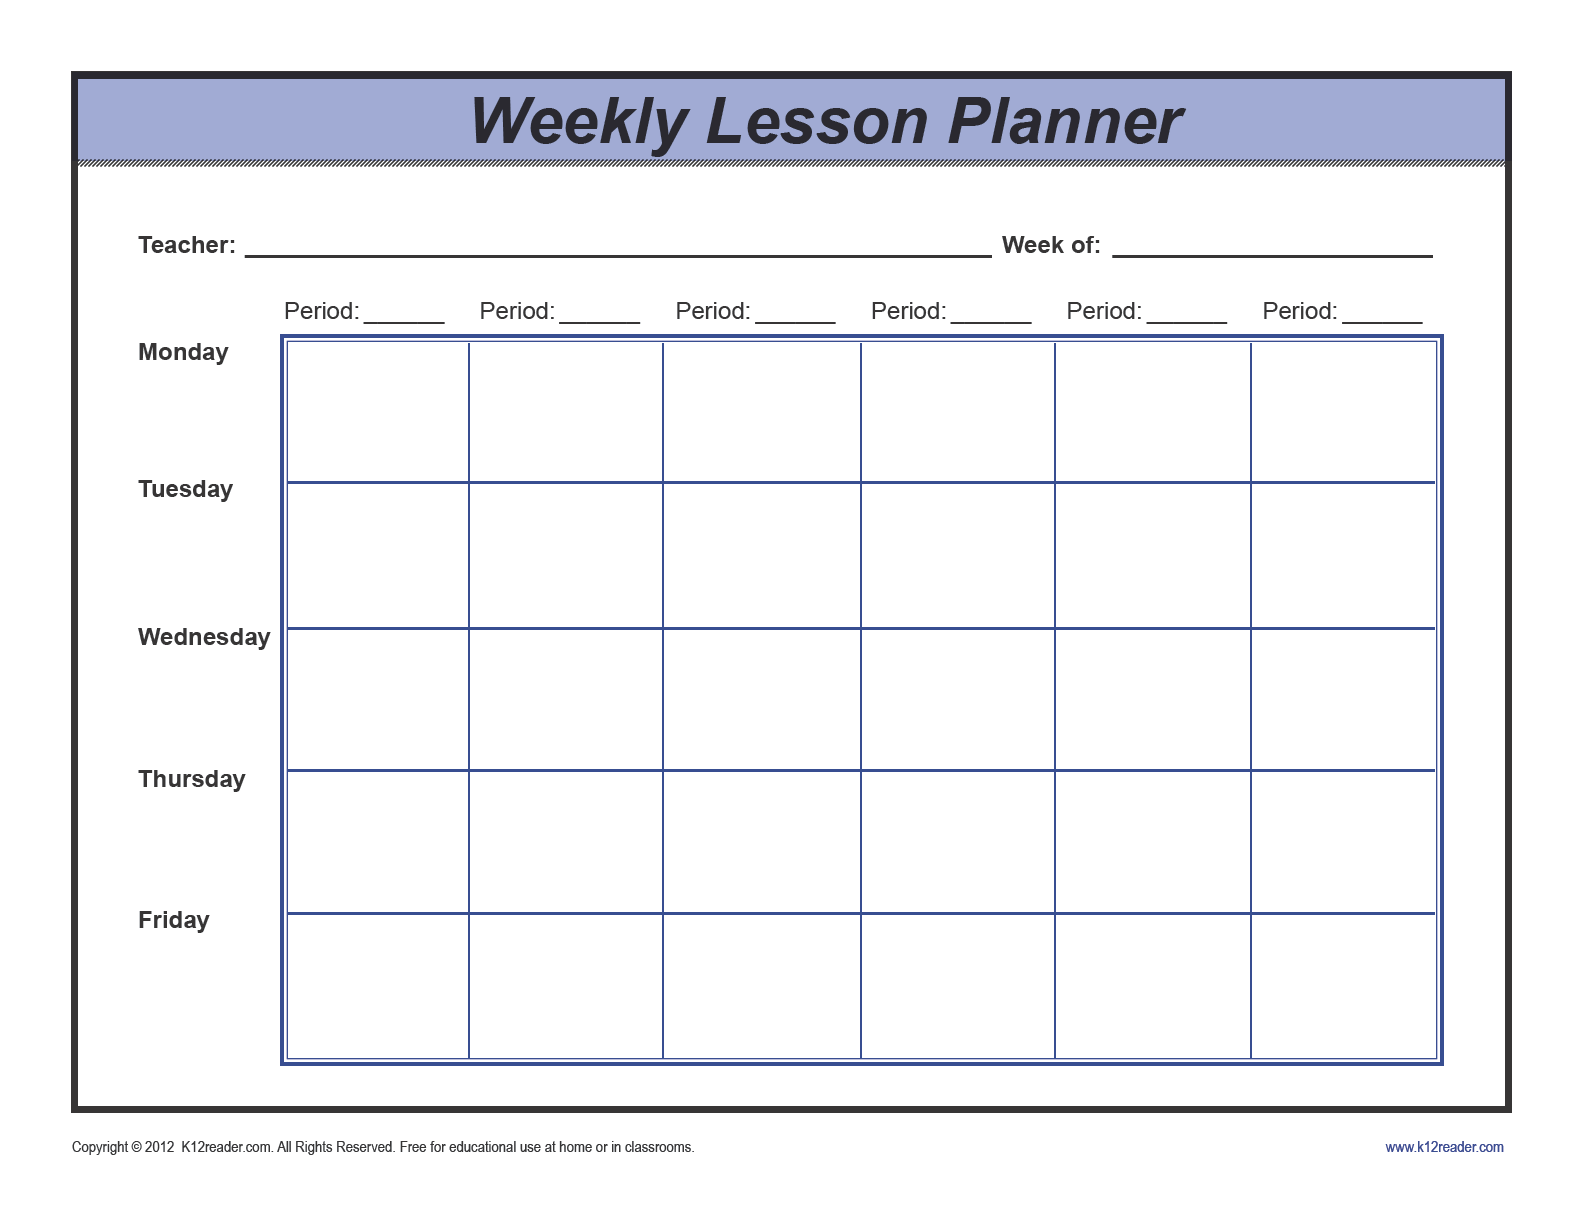 Download Weekly Lesson Plan Template